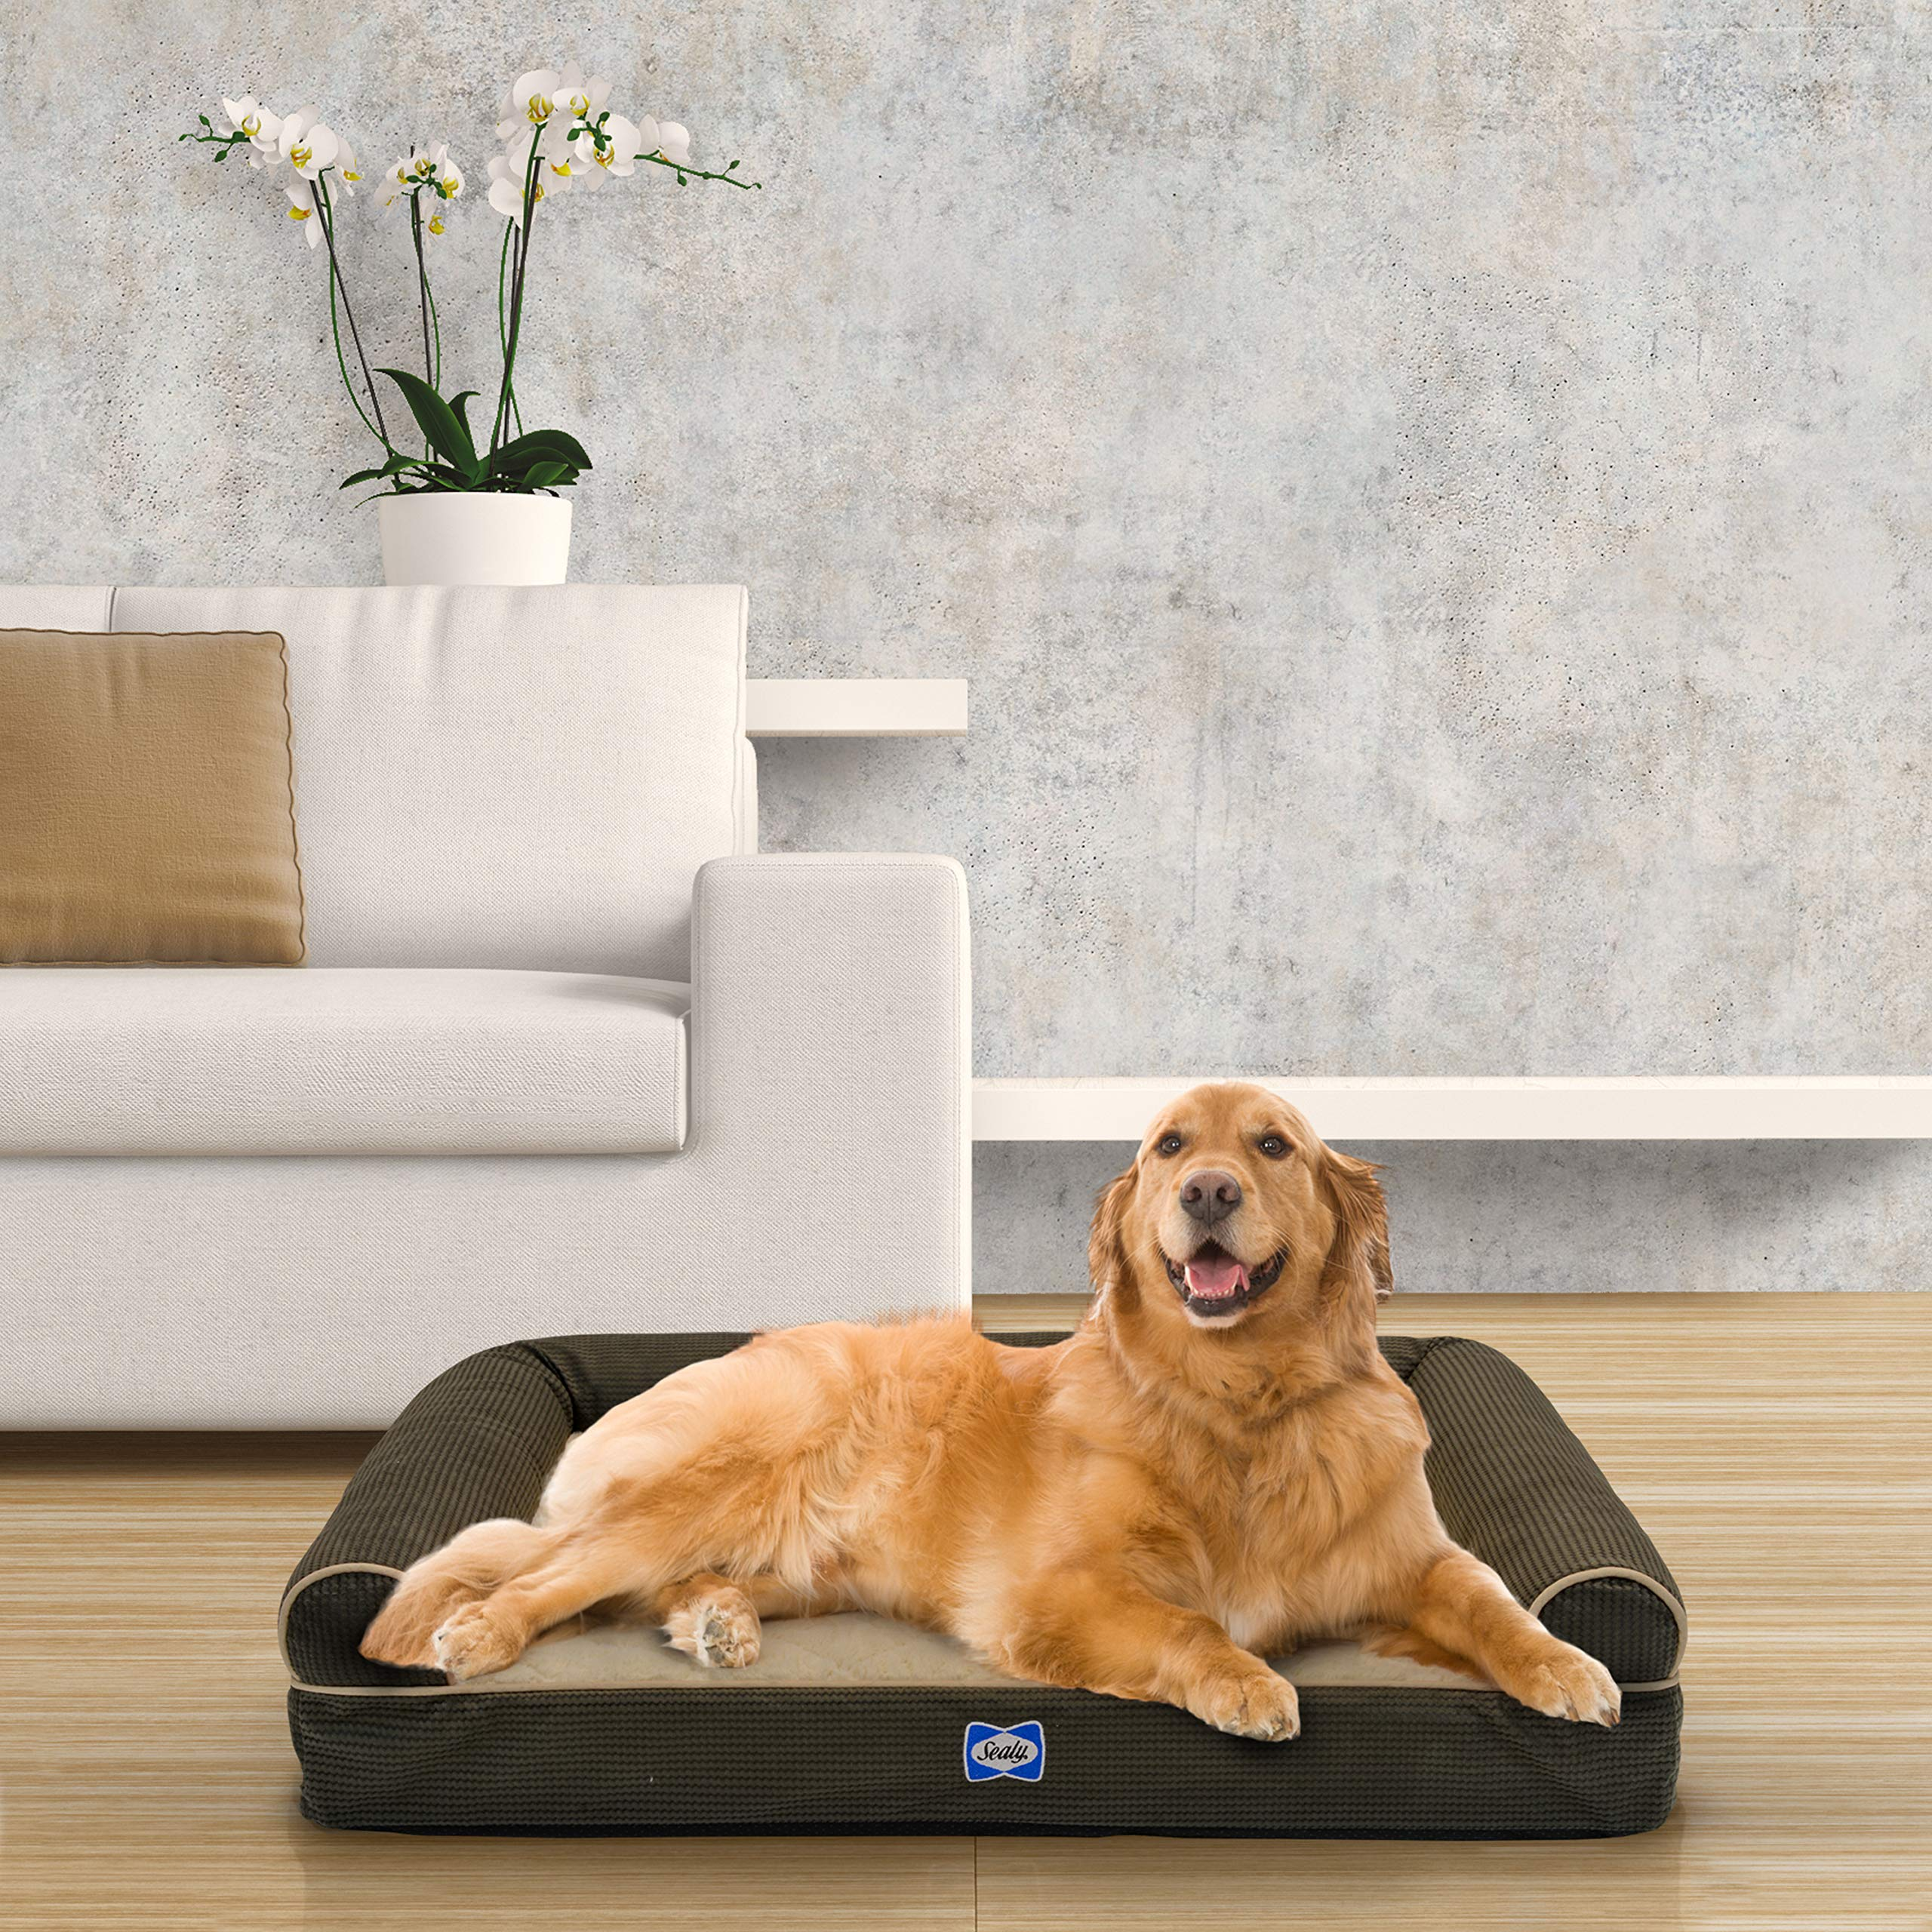 Sealy Ultra Plush Sofa-Style Bolster Dog Bed Brown, Large - Orthopedic Foam Pet Bed with Machine Washable Plush Cover by Sealy Dog Bed